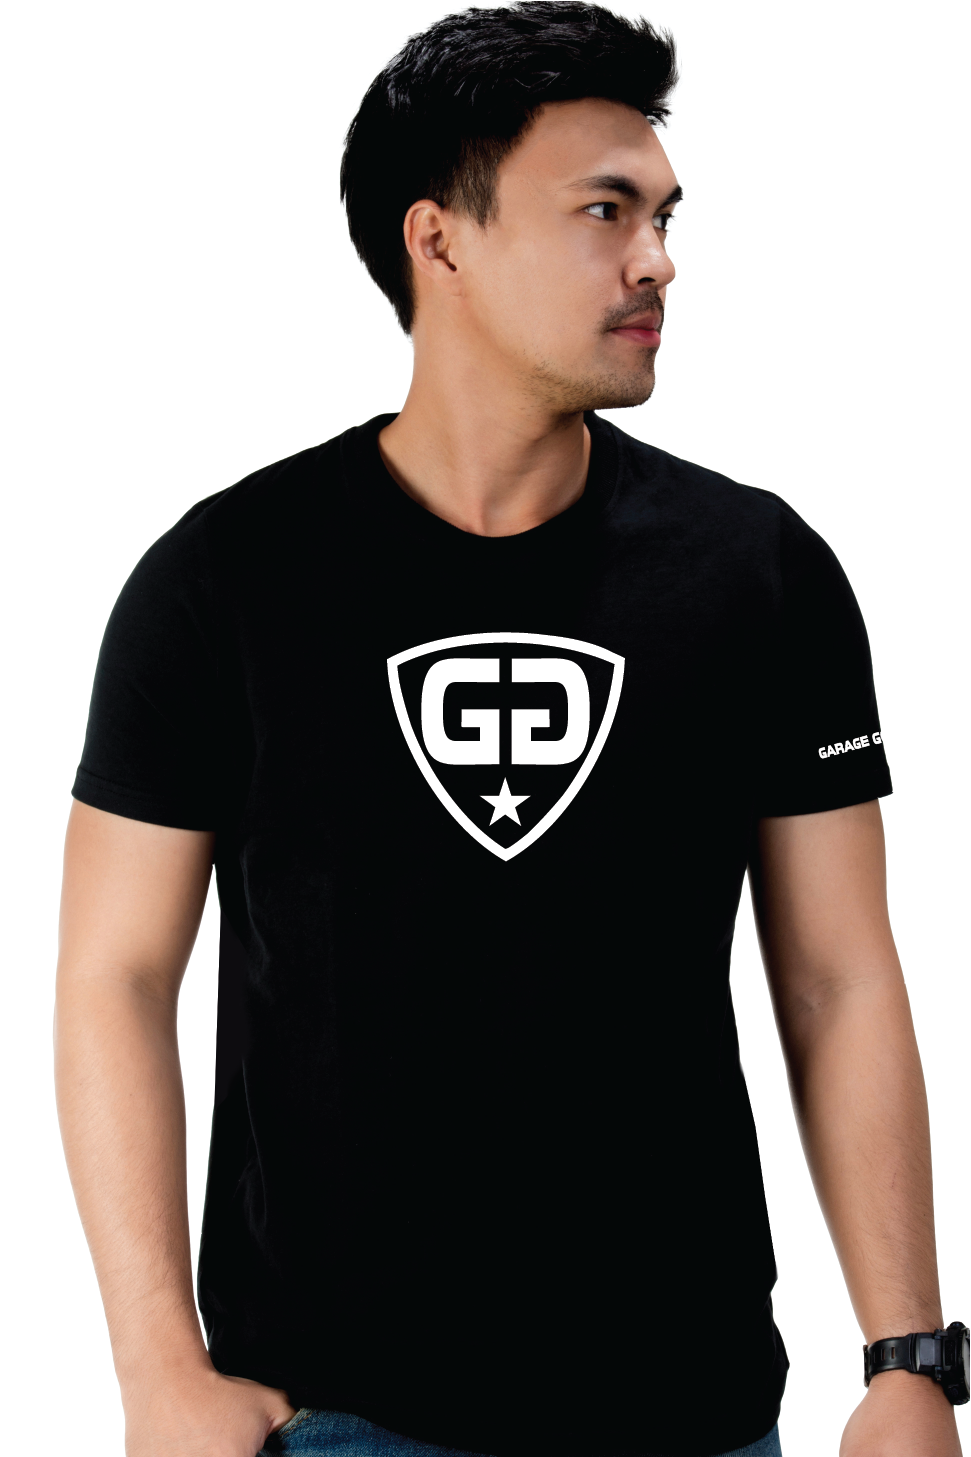 gg center shield black